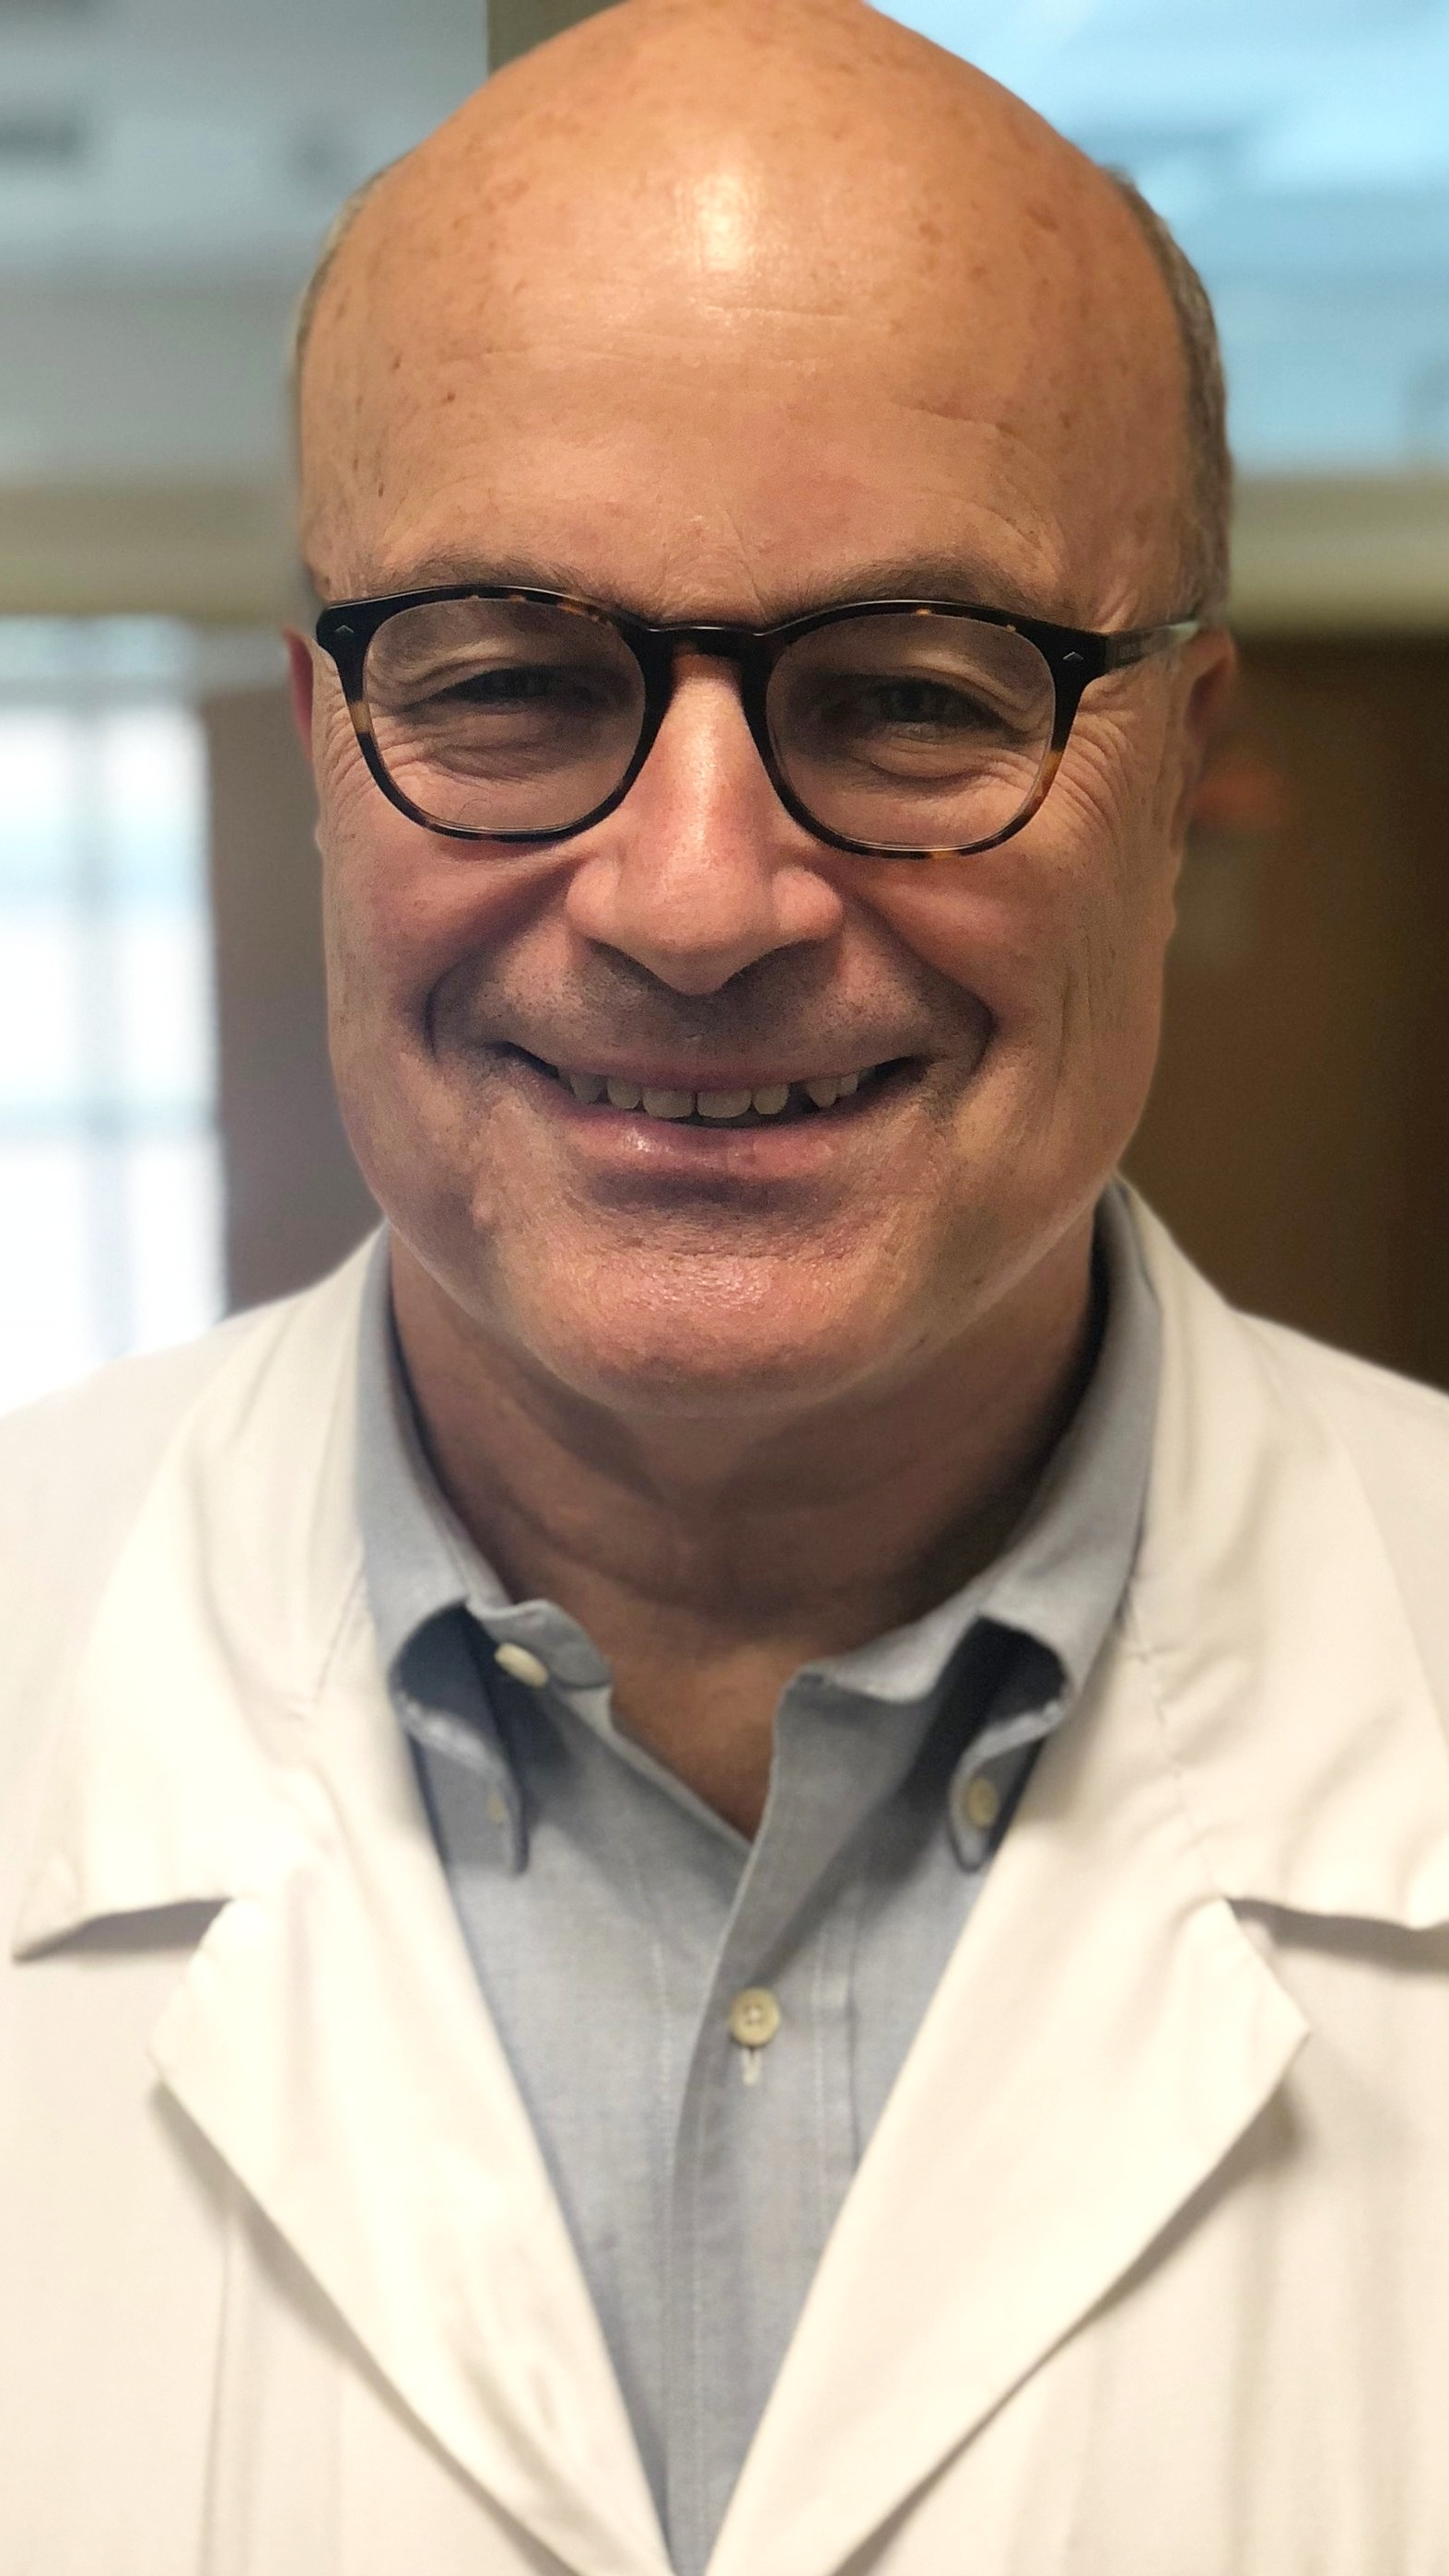 Dr. Doug Blayney - Oncologist: Specializing in breast cancerExperience: 30+ yearsHospital/clinic size: Large teaching institution